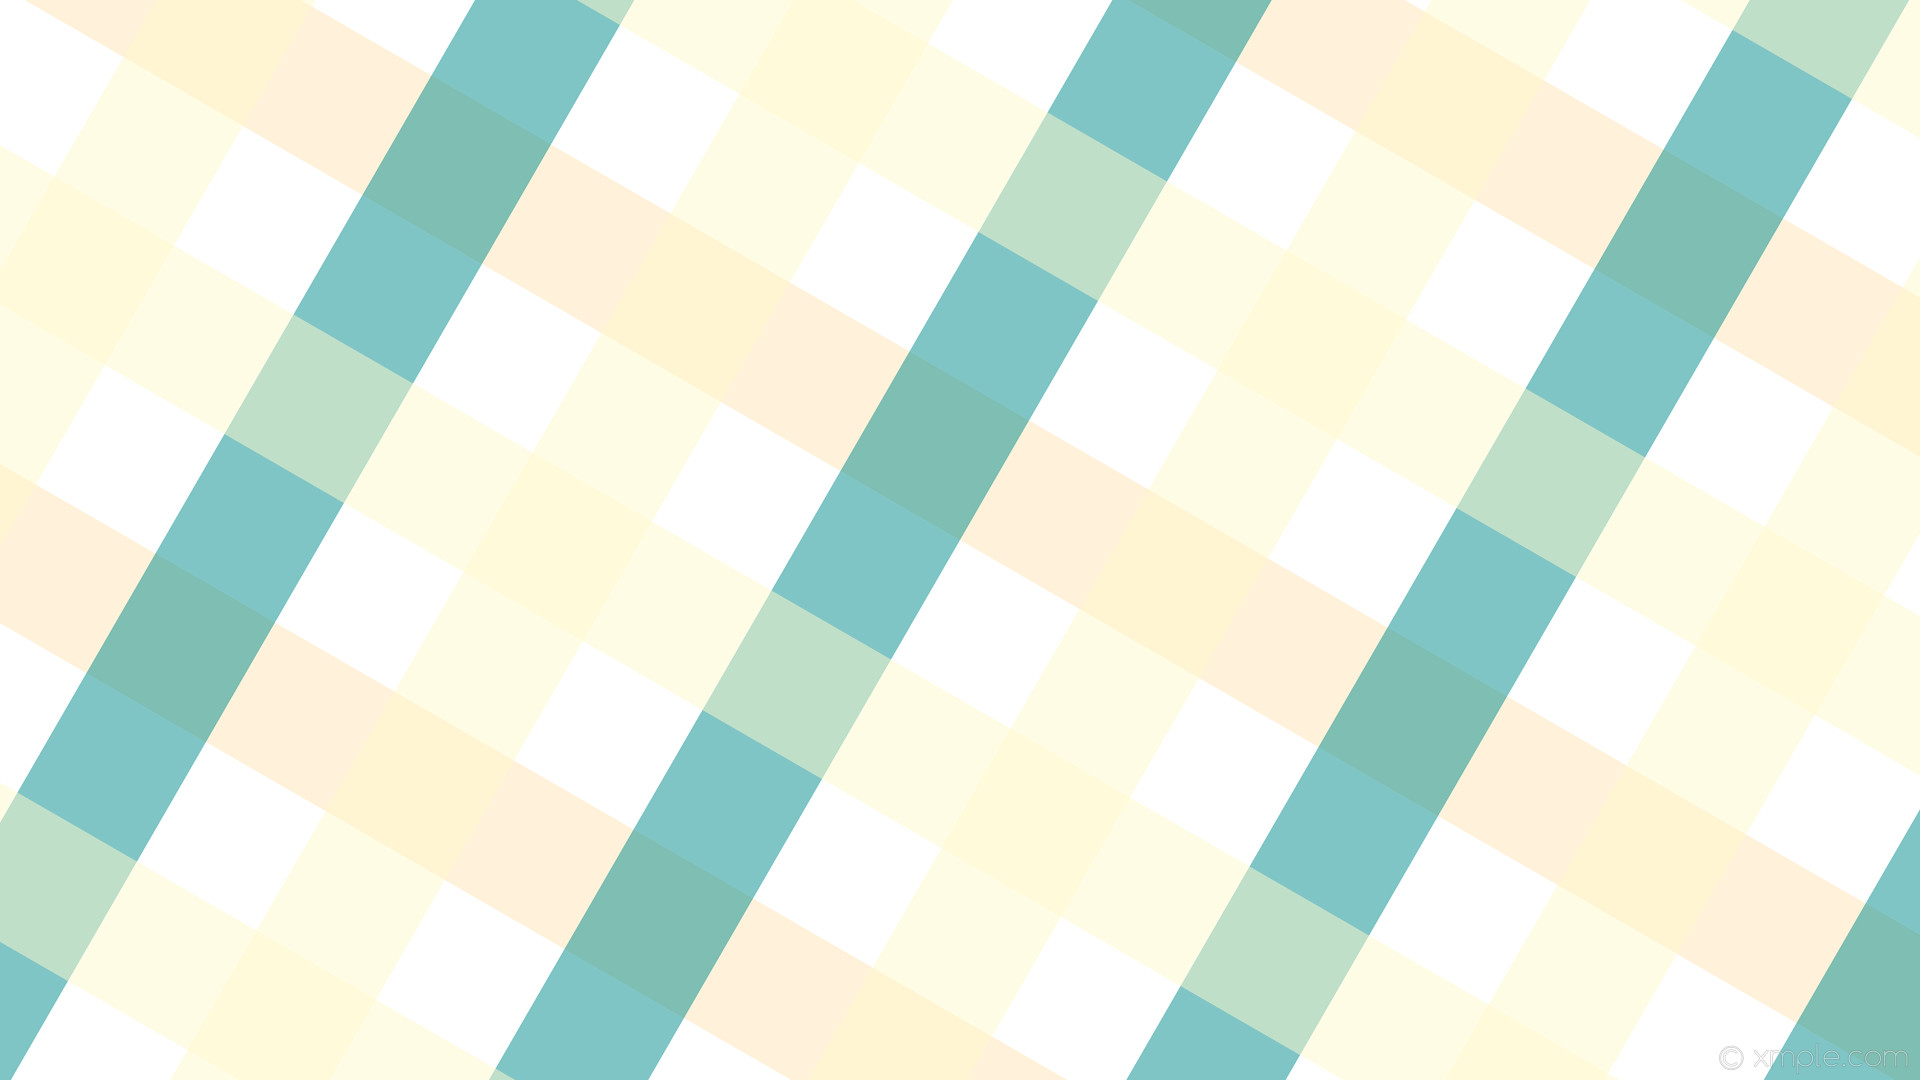 … wallpaper green yellow gingham striped quad white moccasin dark cyan .  …